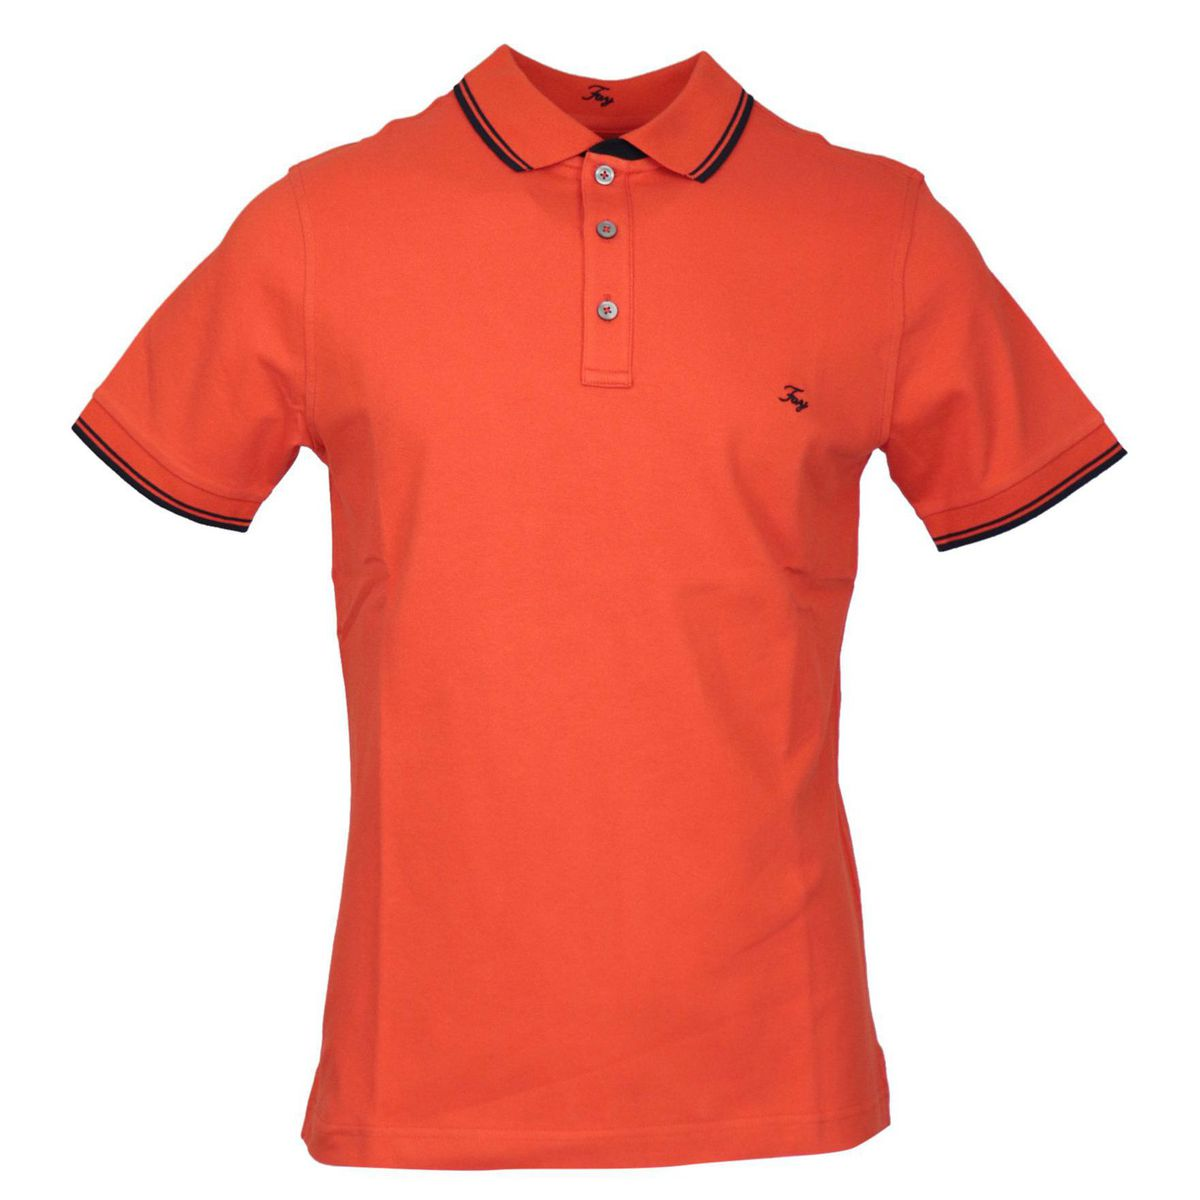 Three button stretch cotton polo shirt with logo embroidery Orange Fay